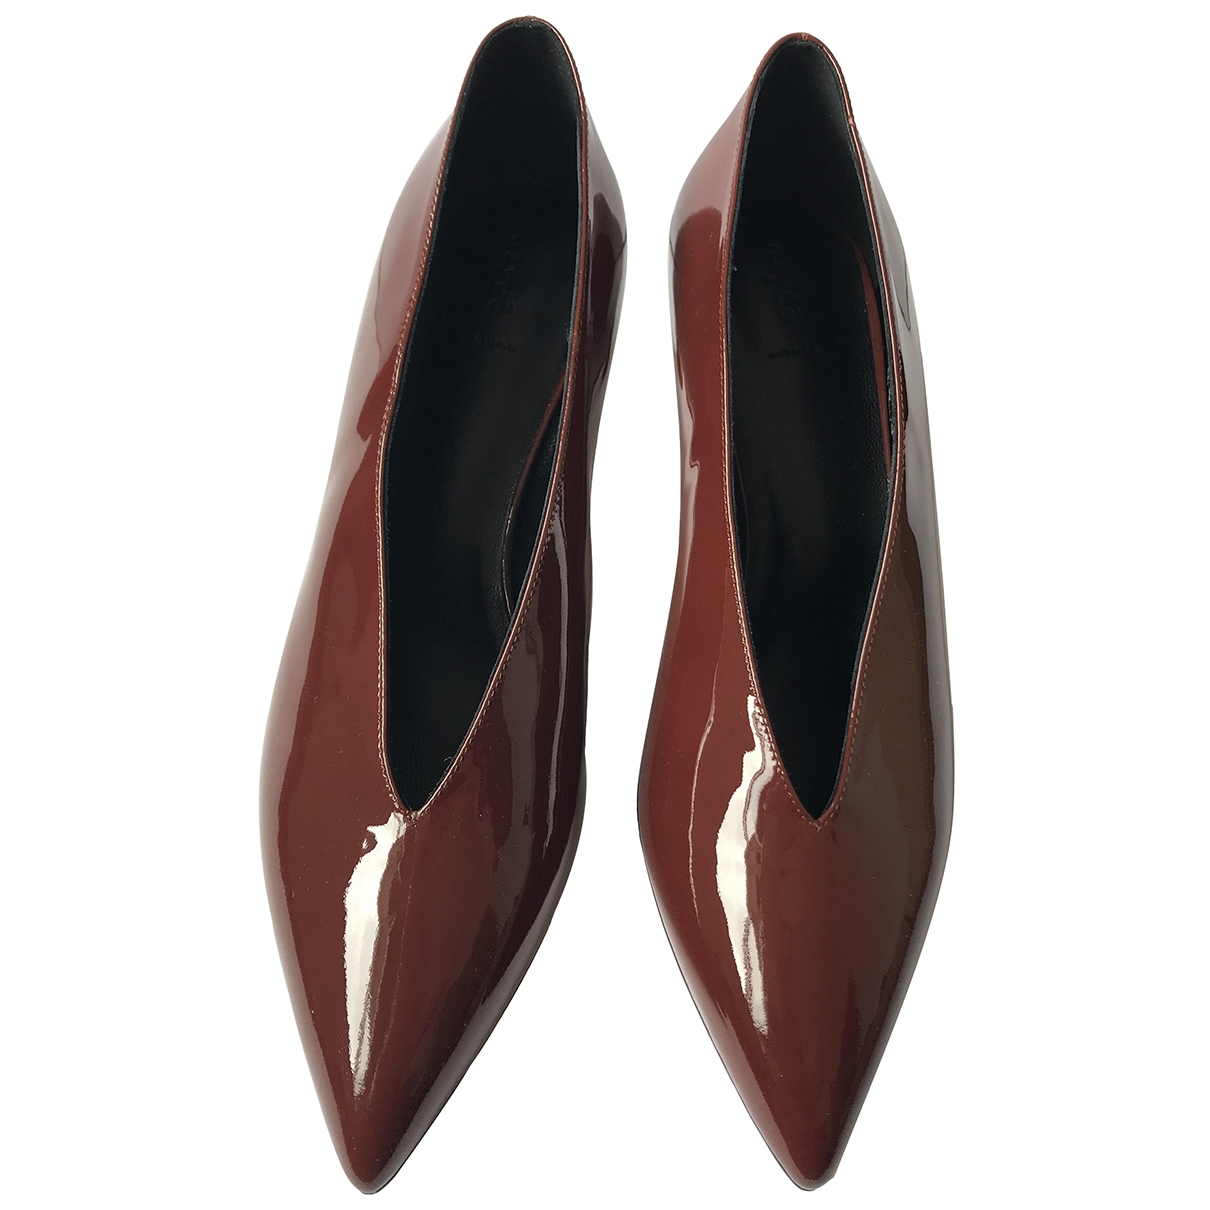 Aeyde \N Brown Patent leather Heels for Women 38 EU